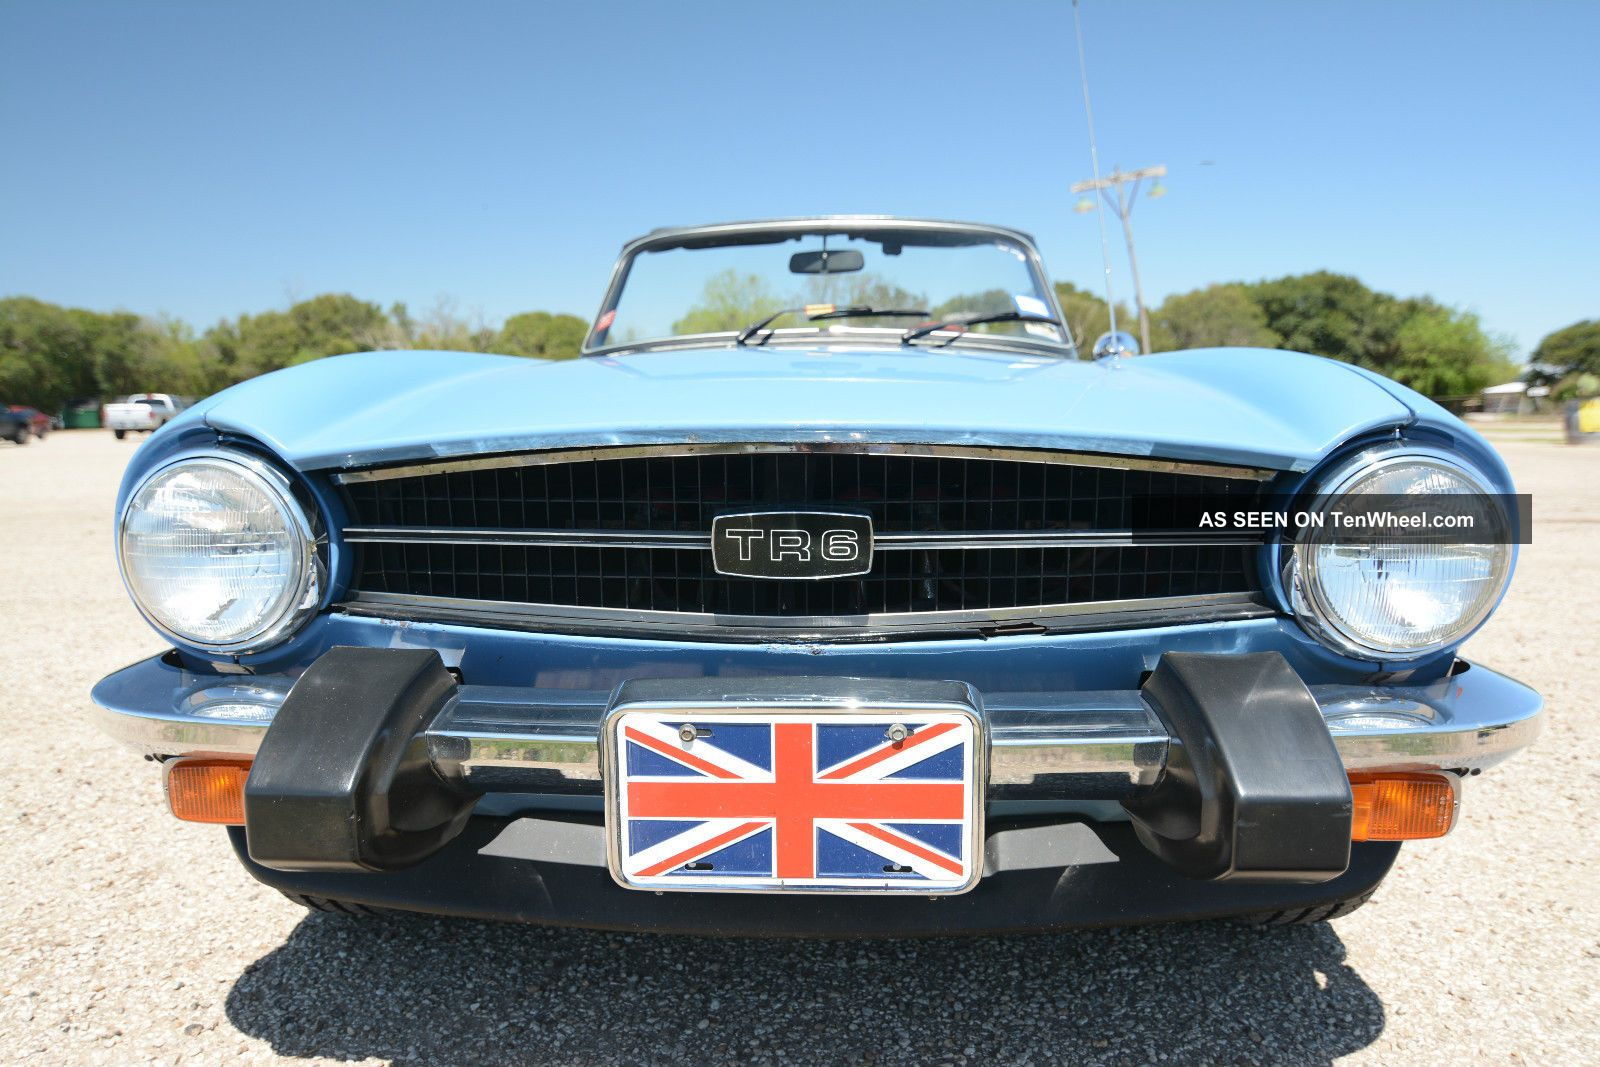 1976 Triumph Tr6 2nd Owner Same Family,  Always Garage Kept & TR-6 photo